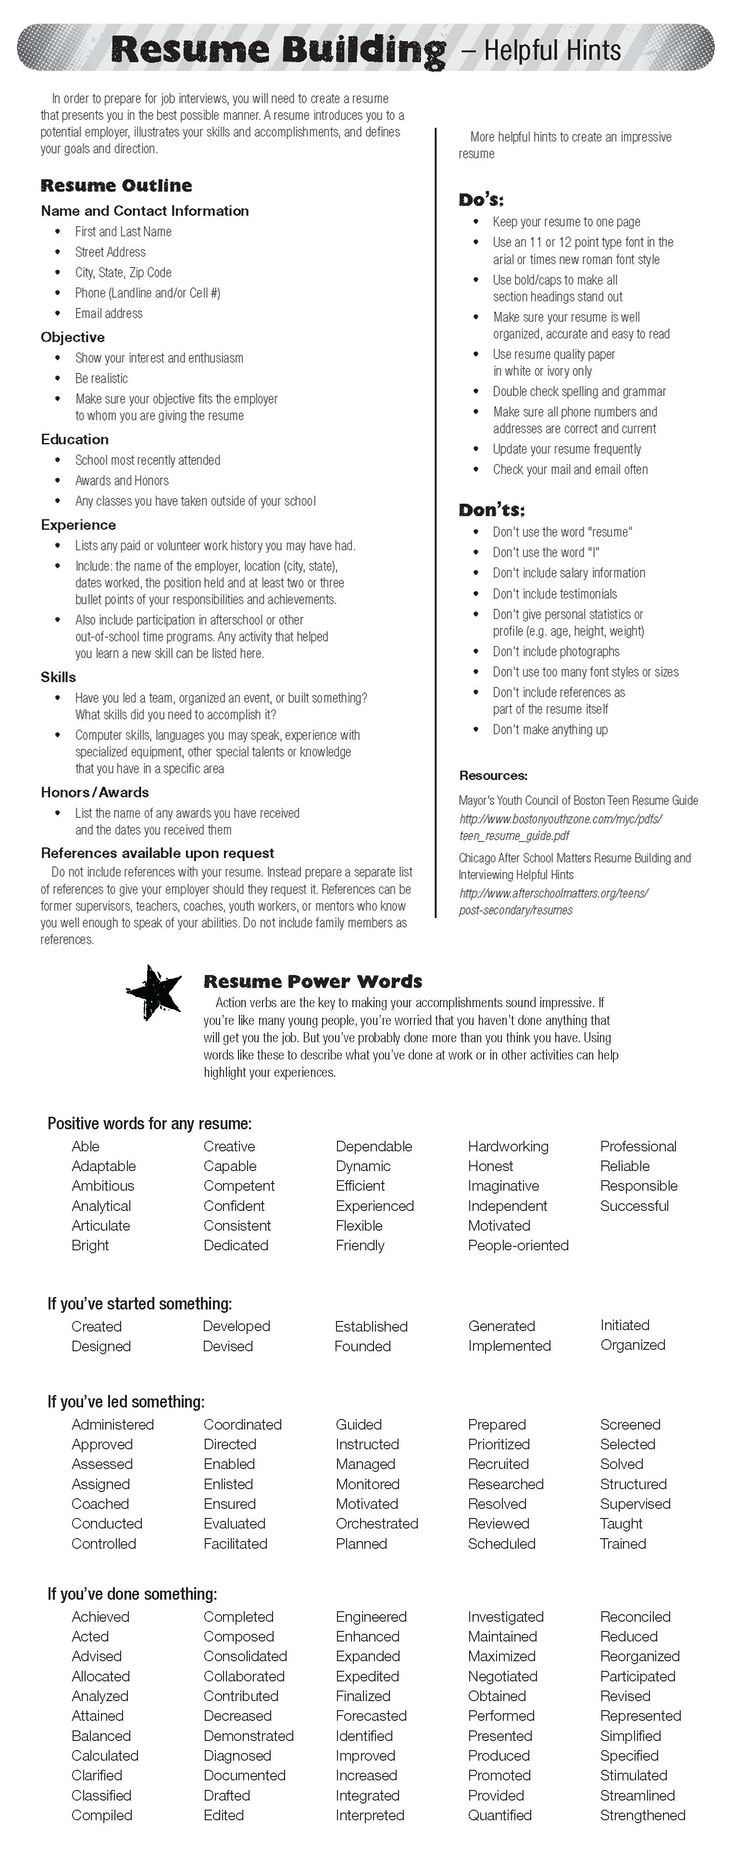 Opposenewapstandardsus  Pleasant  Ideas About Resume On Pinterest  Cv Format Resume Cv And  With Outstanding  Ideas About Resume On Pinterest  Cv Format Resume Cv And Resume Templates With Delectable High School Student Resume Also Resumes Templates In Addition Resum And Good Resume Examples As Well As How To Write A Good Resume Additionally Template For Resume From Pinterestcom With Opposenewapstandardsus  Outstanding  Ideas About Resume On Pinterest  Cv Format Resume Cv And  With Delectable  Ideas About Resume On Pinterest  Cv Format Resume Cv And Resume Templates And Pleasant High School Student Resume Also Resumes Templates In Addition Resum From Pinterestcom